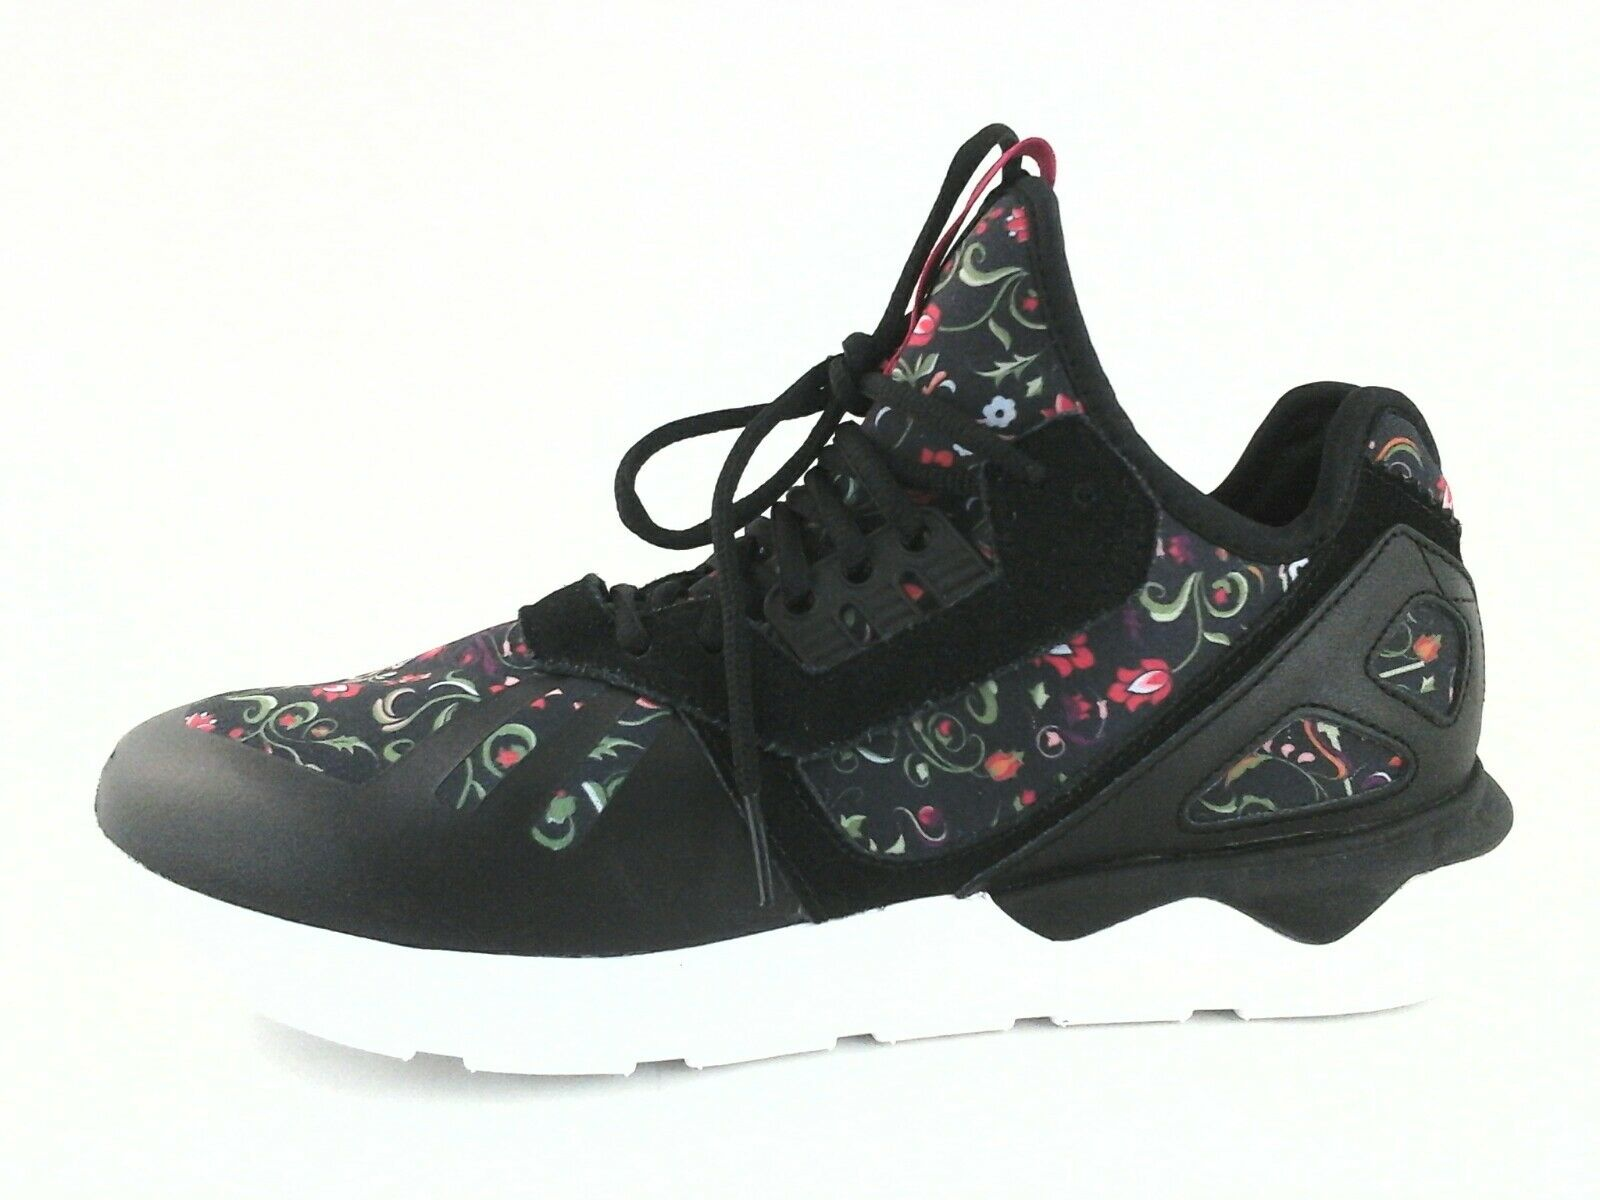 Adidas Tubular Womens AF6278 Sneakers Shoes Athletic Flowers US 10 UK 8.5  NEW f9307e4320